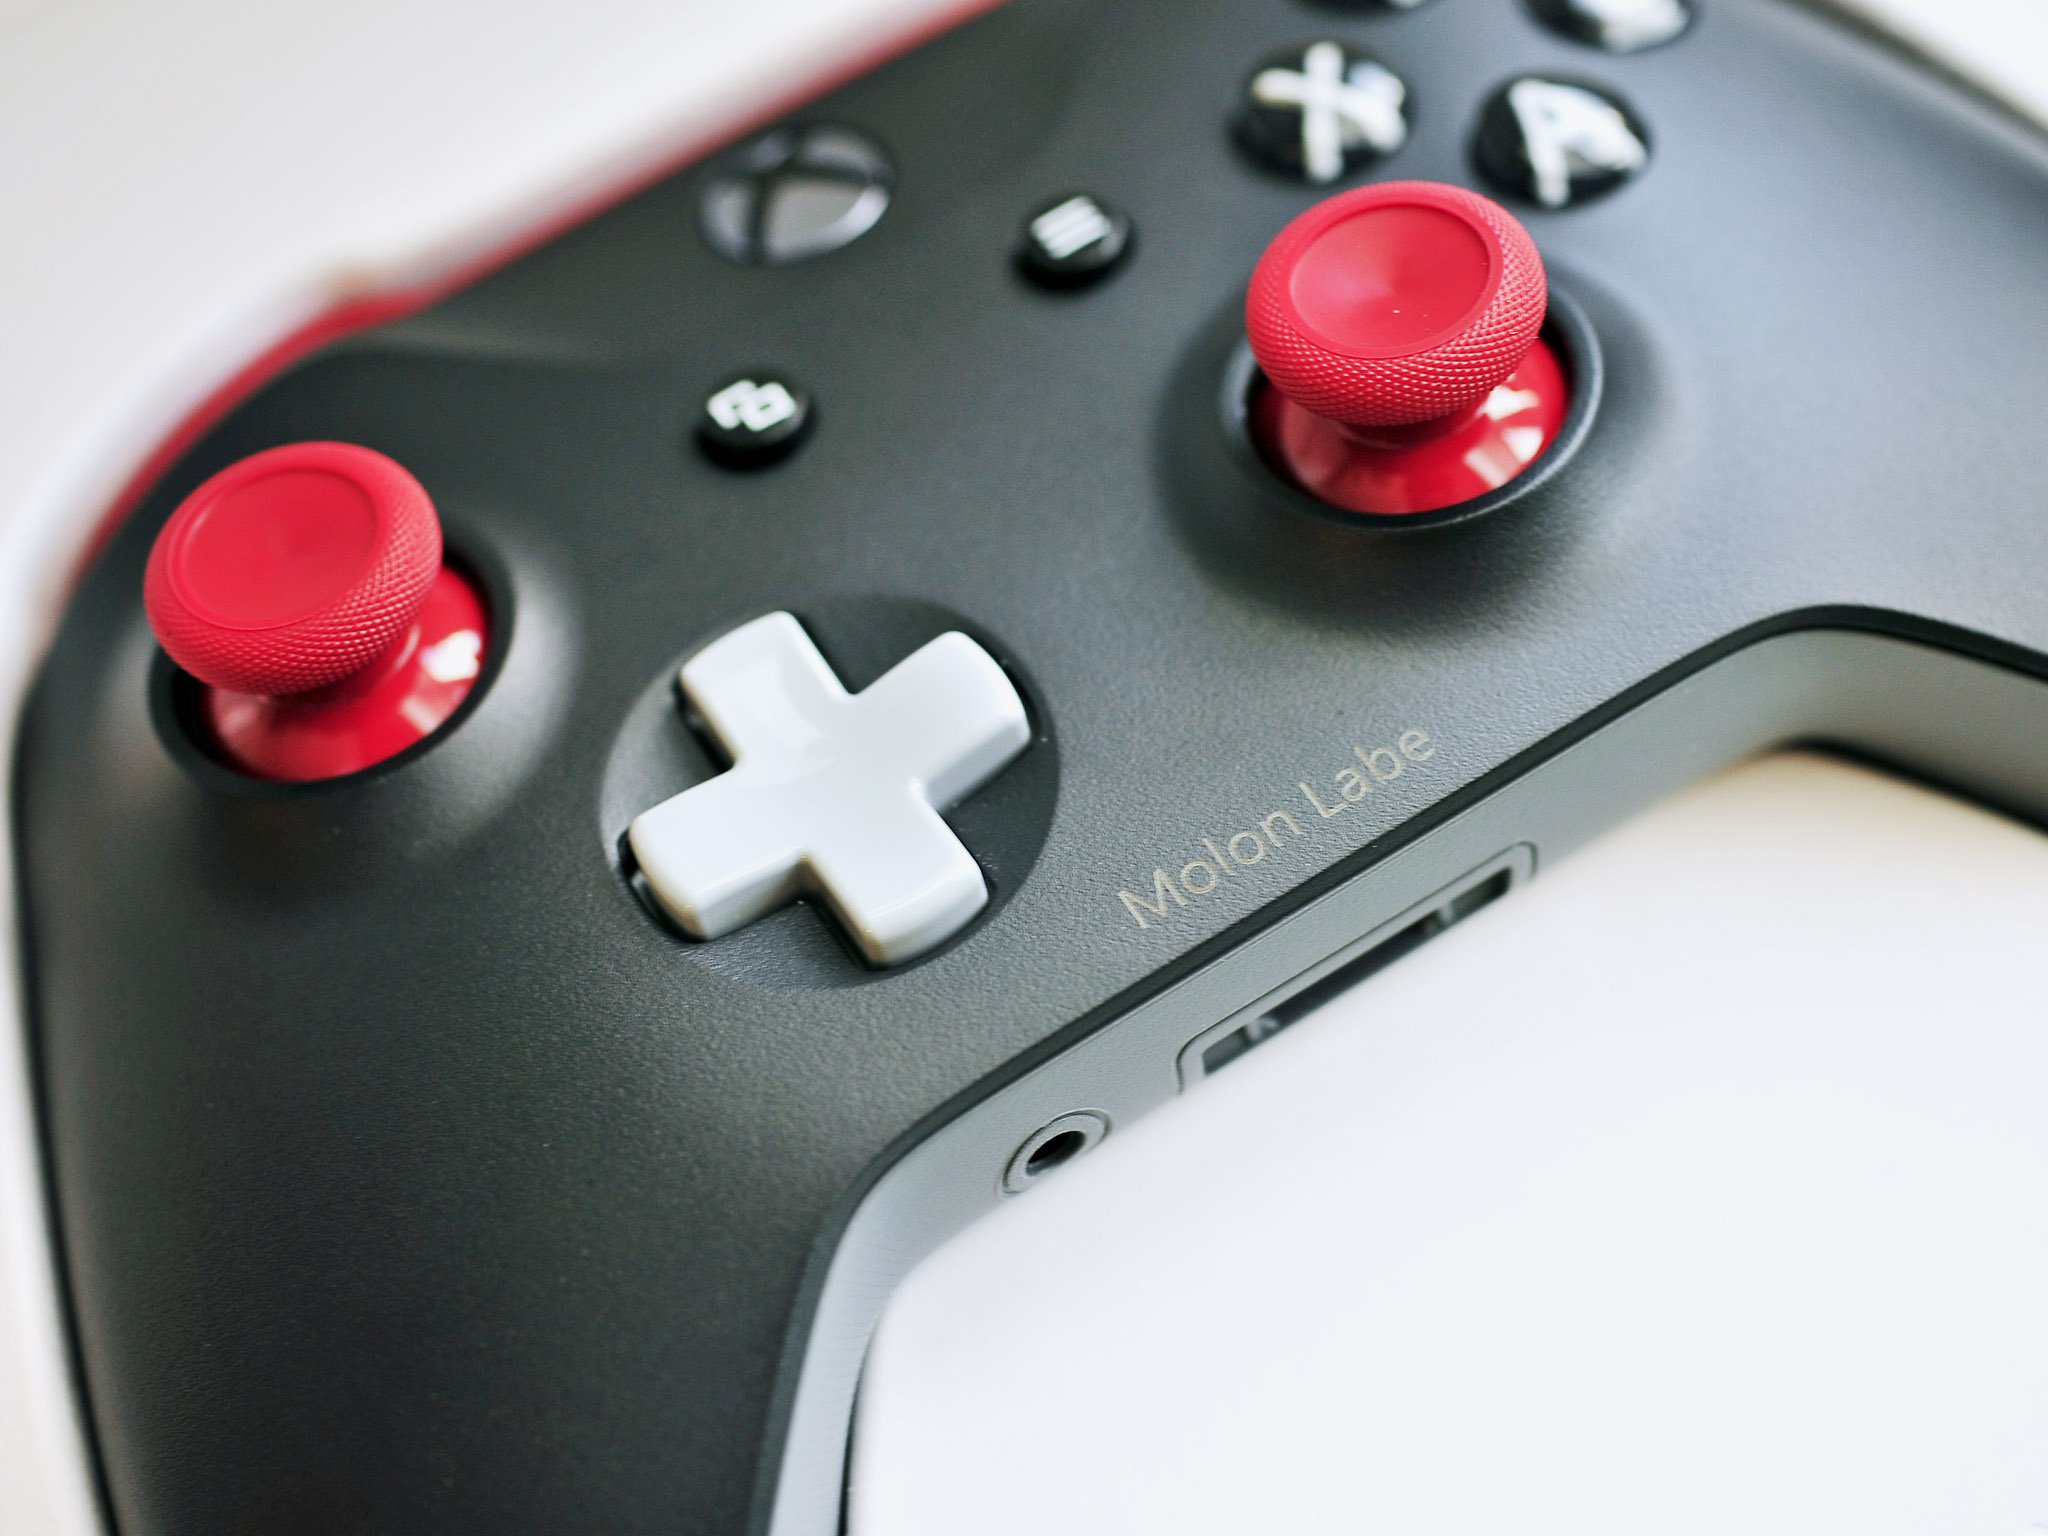 How To Pair A Wireless Xbox Controller With Your Xbox One